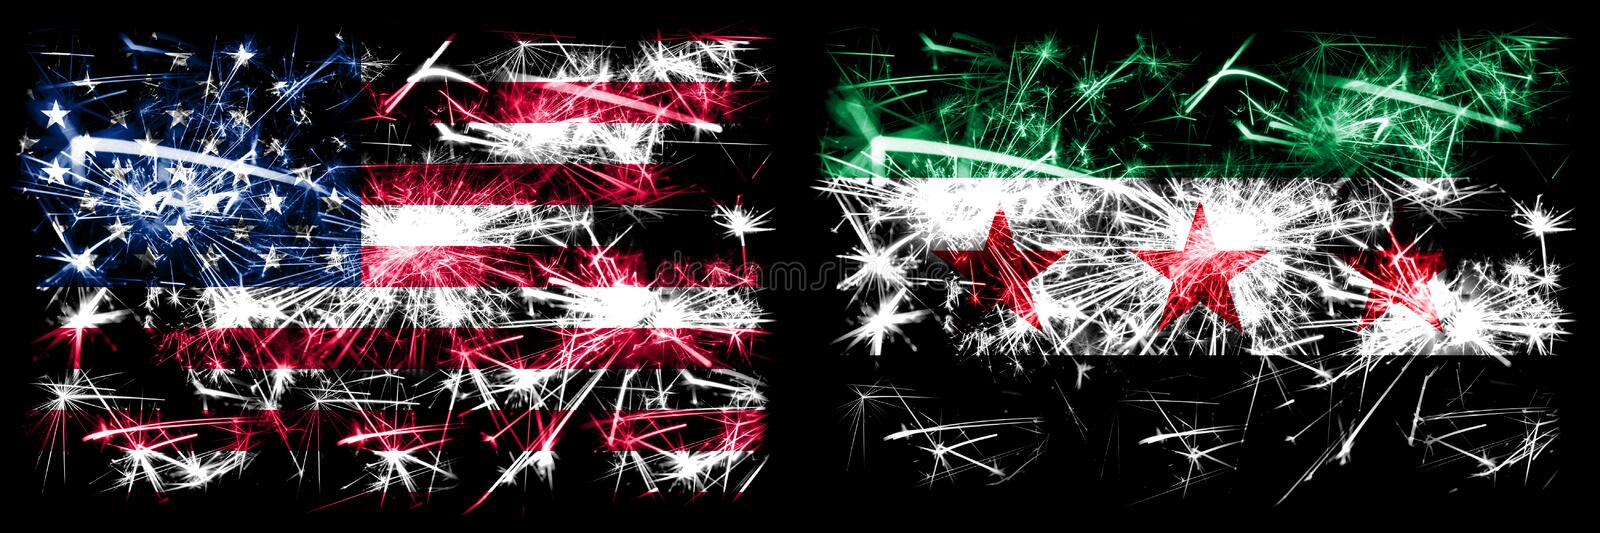 United States of America, USA vs Syria, Syrian Arab Republic, three stars, observed New Year celebration sparkling fireworks flags. Concept background vector illustration